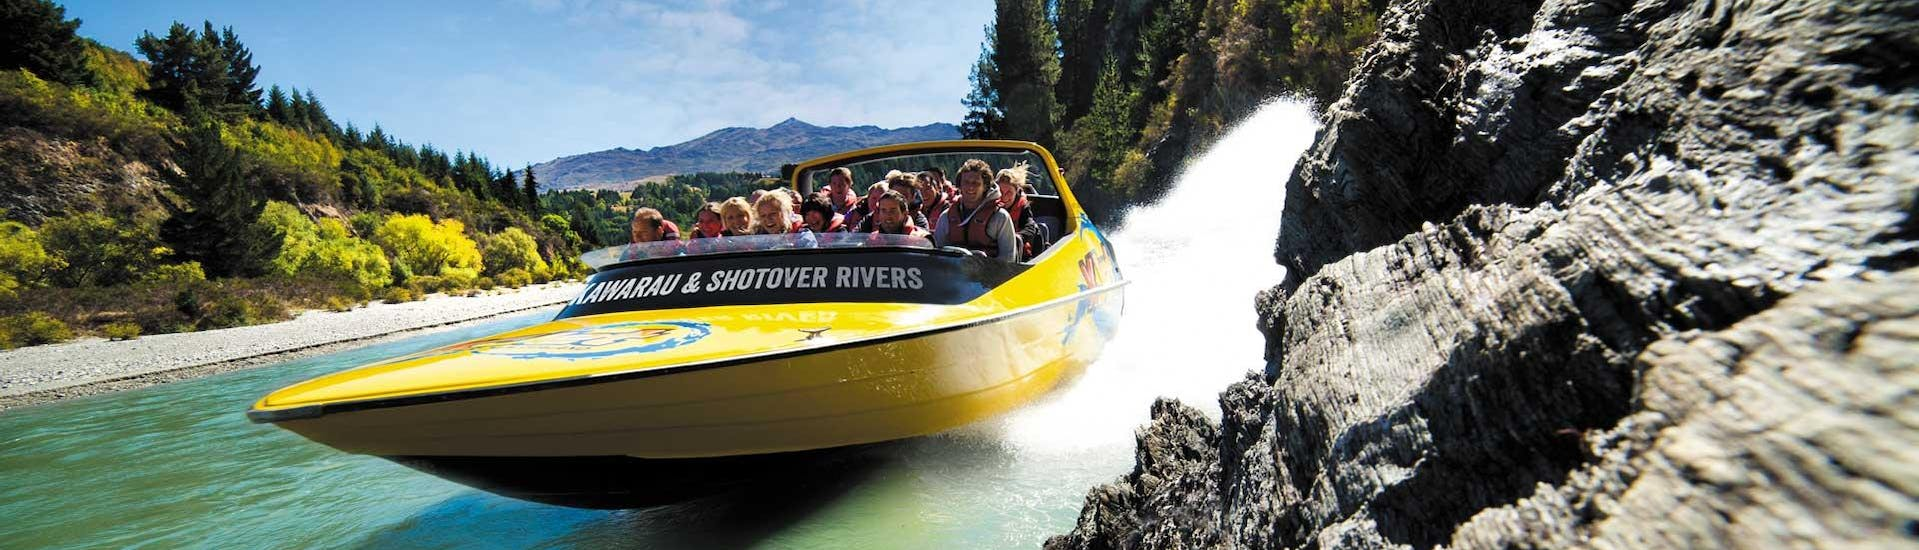 Guests are experiencing that the jet boat ride on Shotover River with KJet Queenstown is full of thrills and adrenaline.